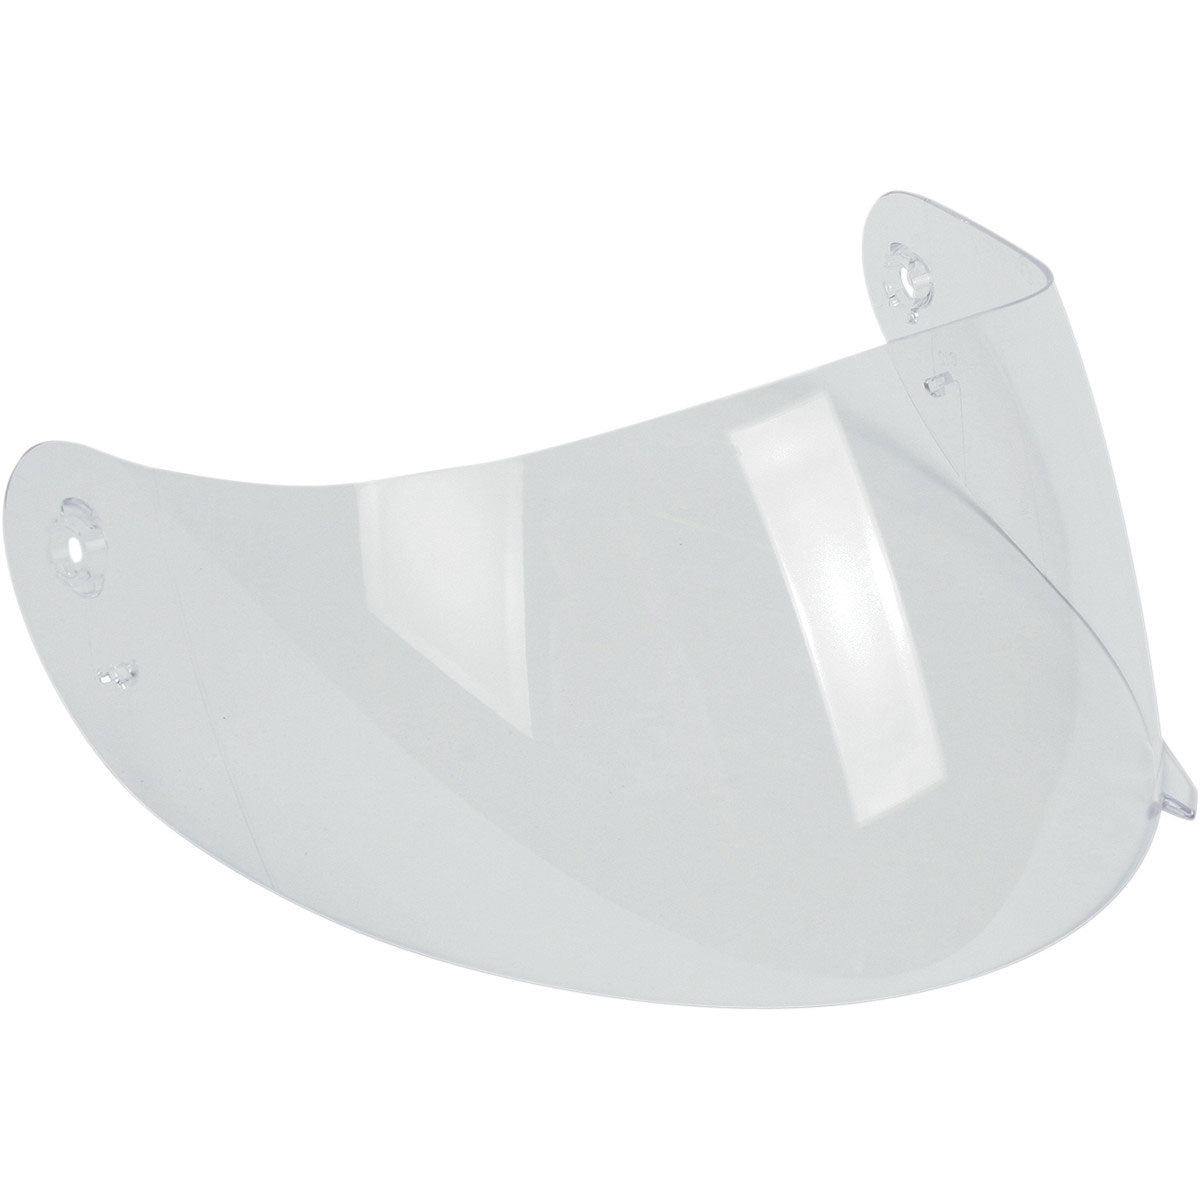 AGV K4/K3 SR Face Shield Helmet Accessories-0130